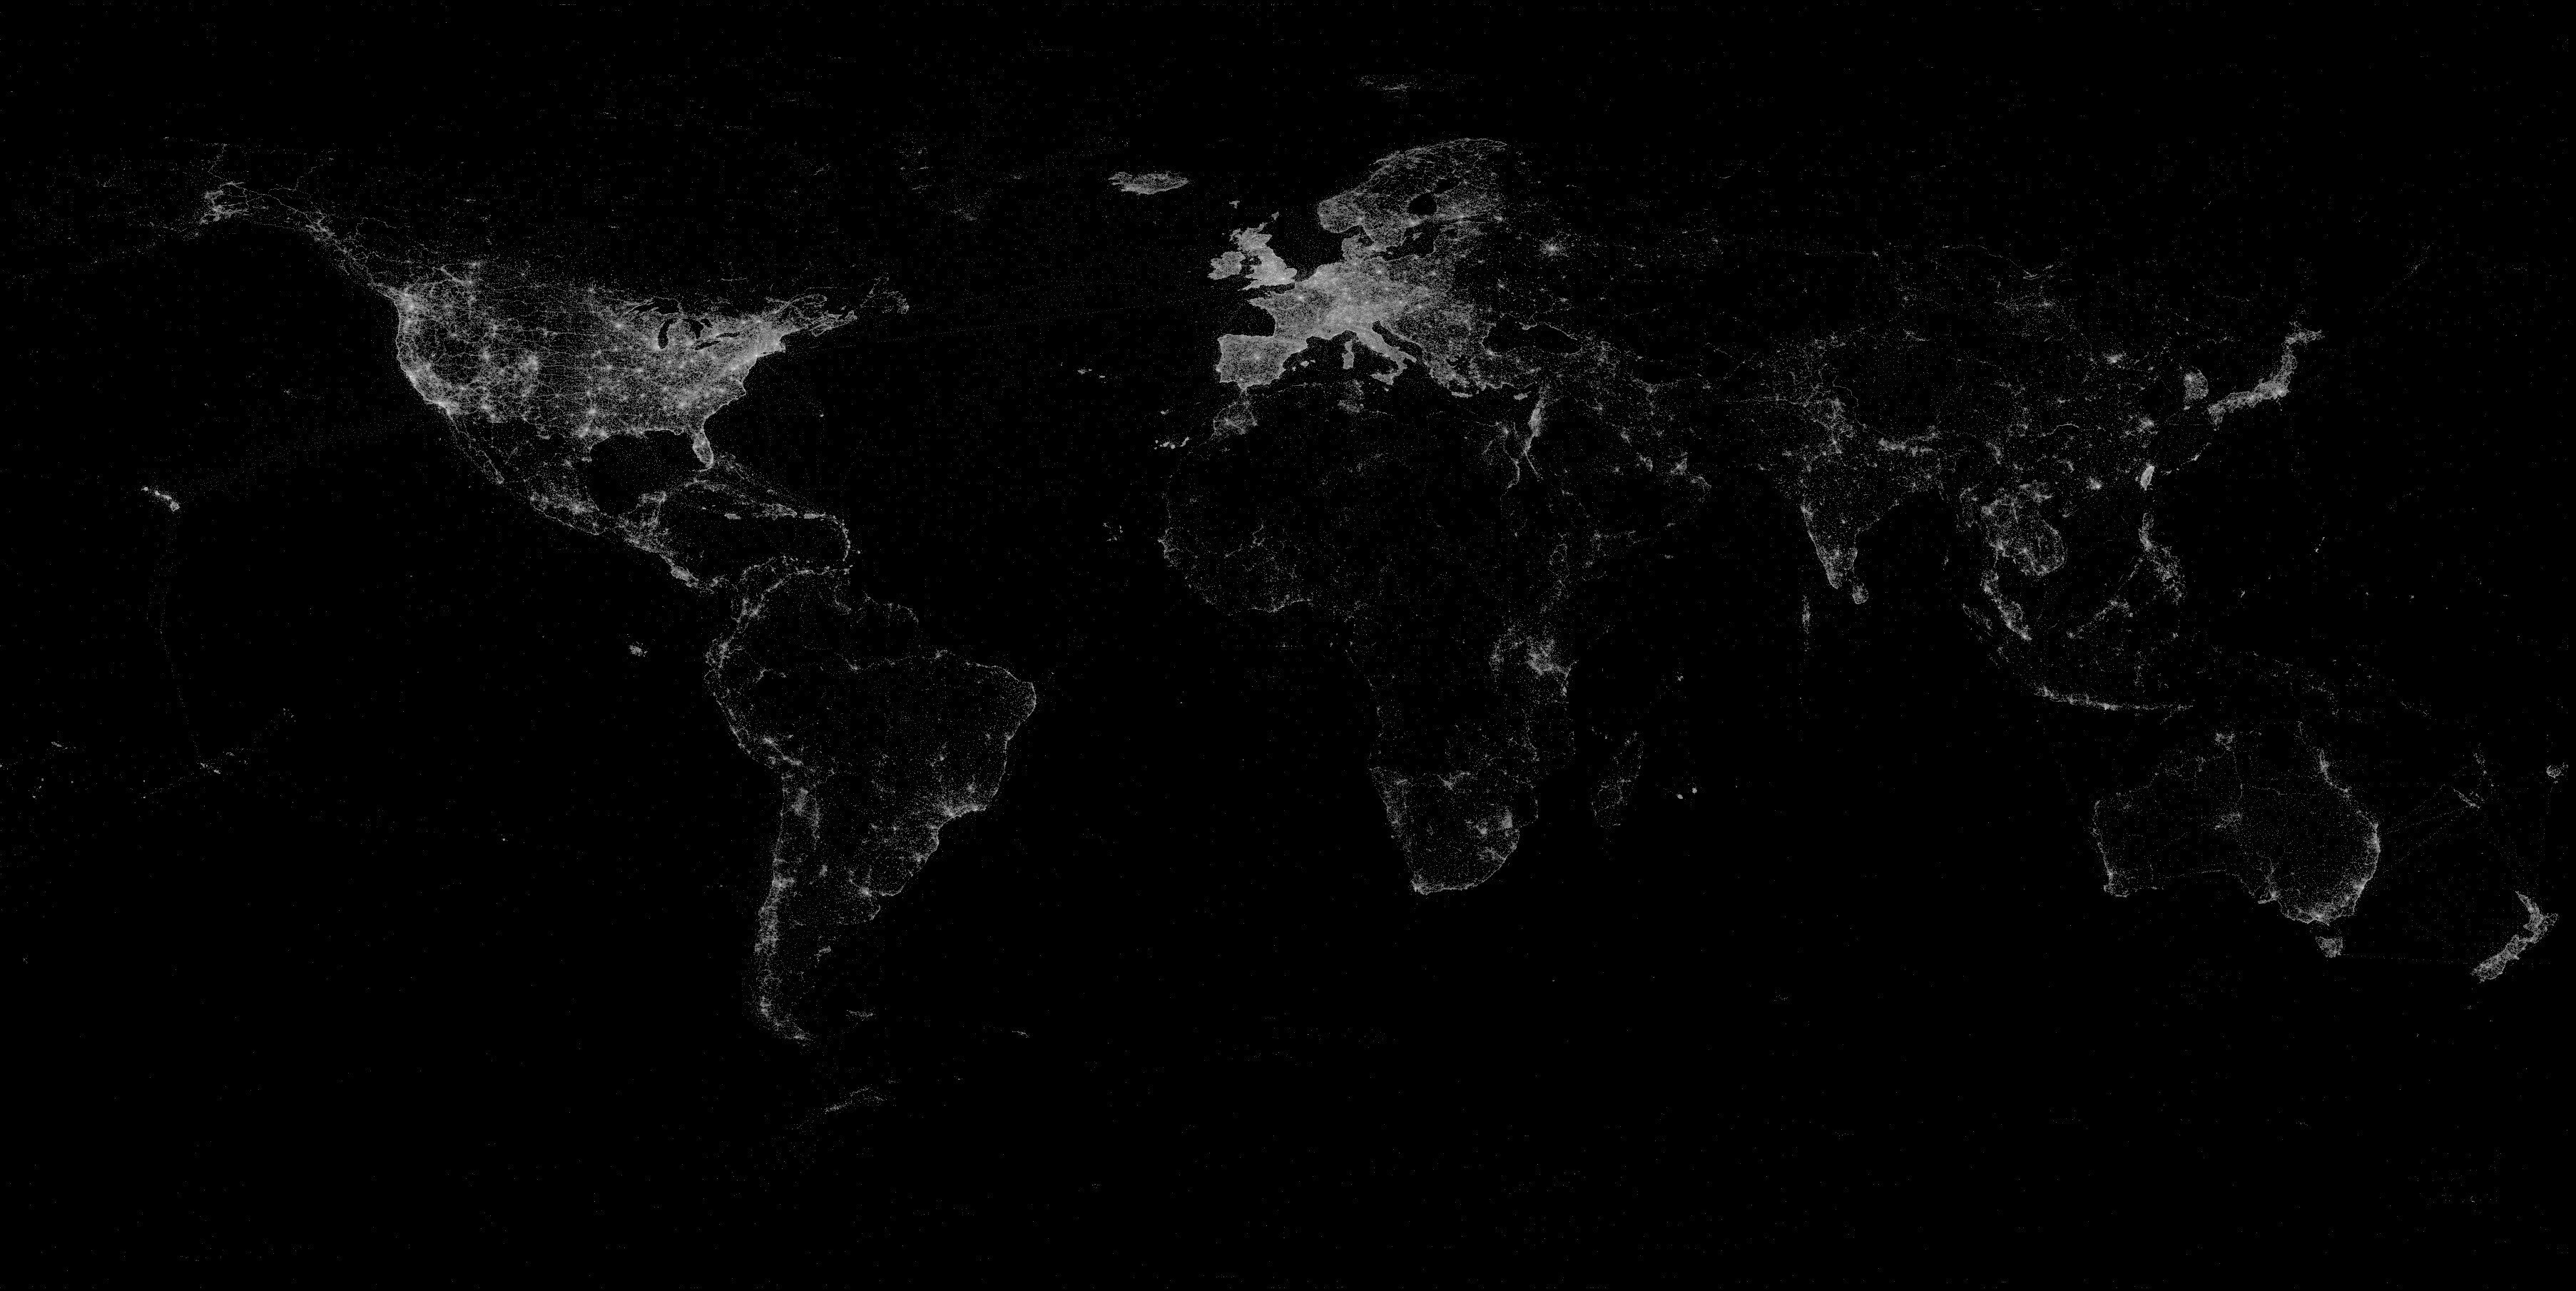 World map wallpapers 66 background pictures 3611x1810 world map wallpaper for windows 10 copy black and white map the world wallpaper valid world map wallpaper for windows 10 copy black and white map gumiabroncs Choice Image